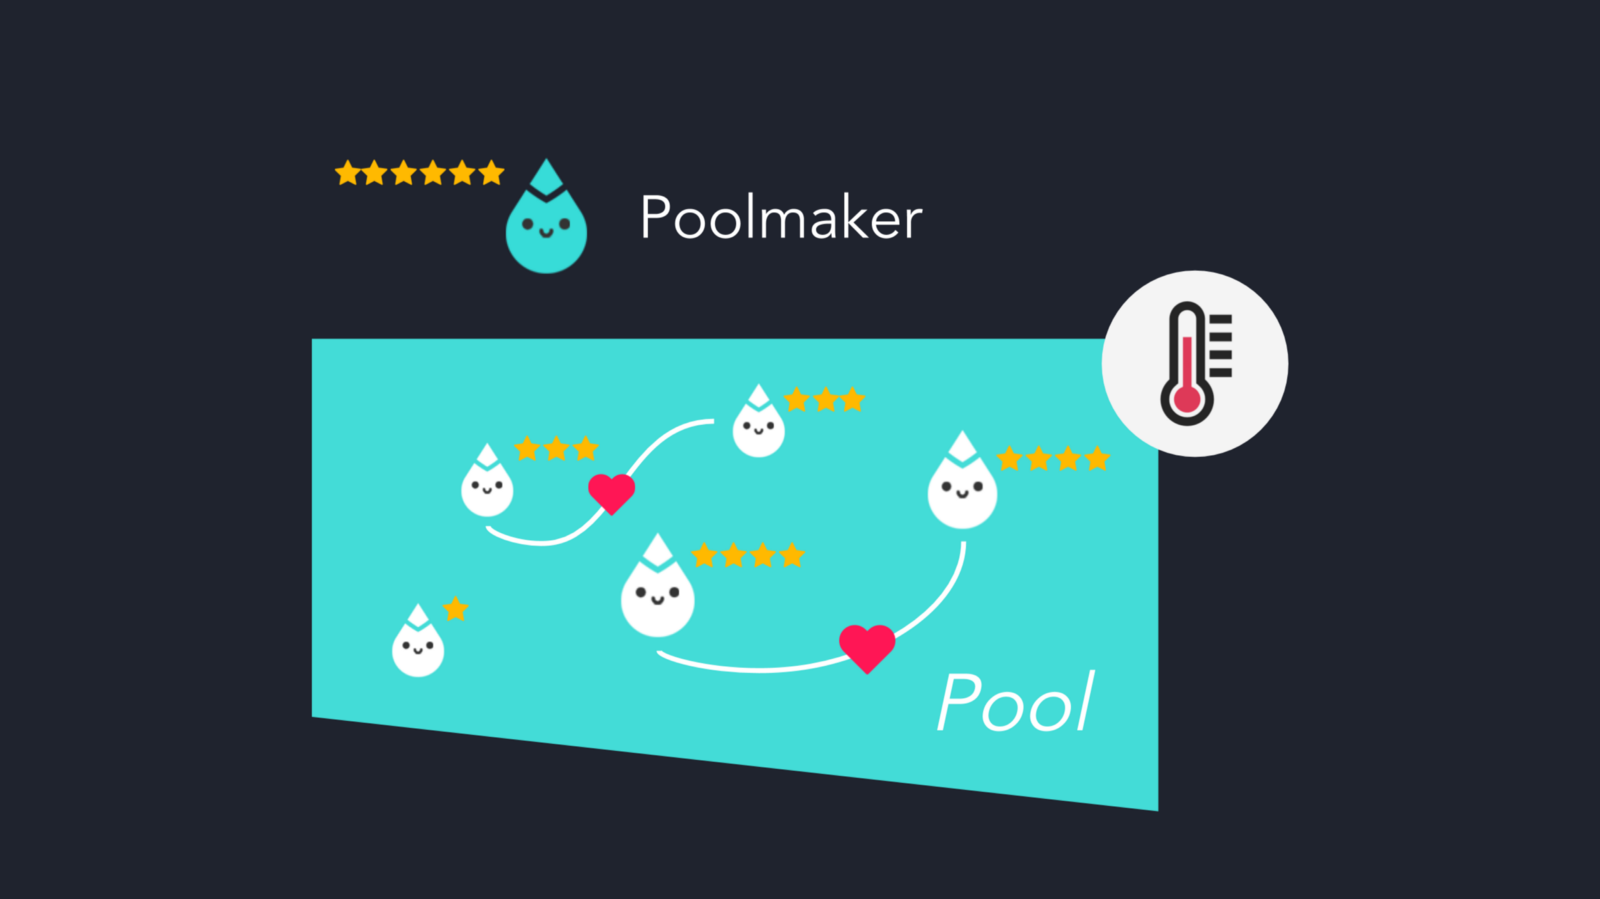 matchmaking pools Specialized in all kinds of swimming pool equipment and accessories where you can grab large collection of add-ons for your above ground pool or your inground swimming pool offering best quality manufacturers.